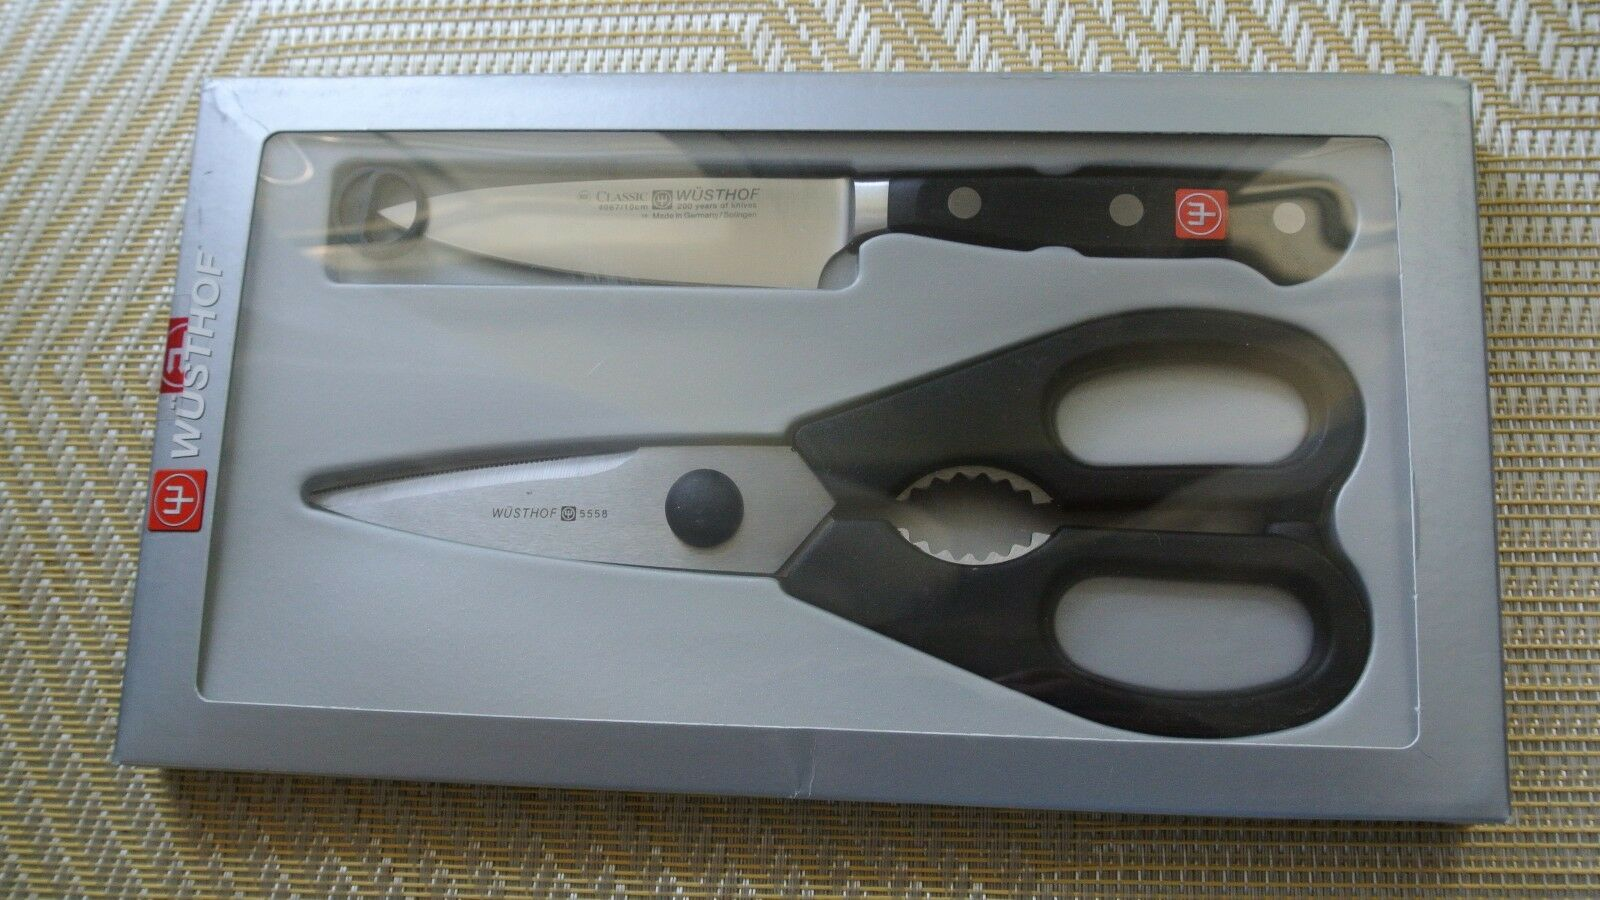 Wusthof new   2pc paring and shear set  item 8958 in box solingen germany